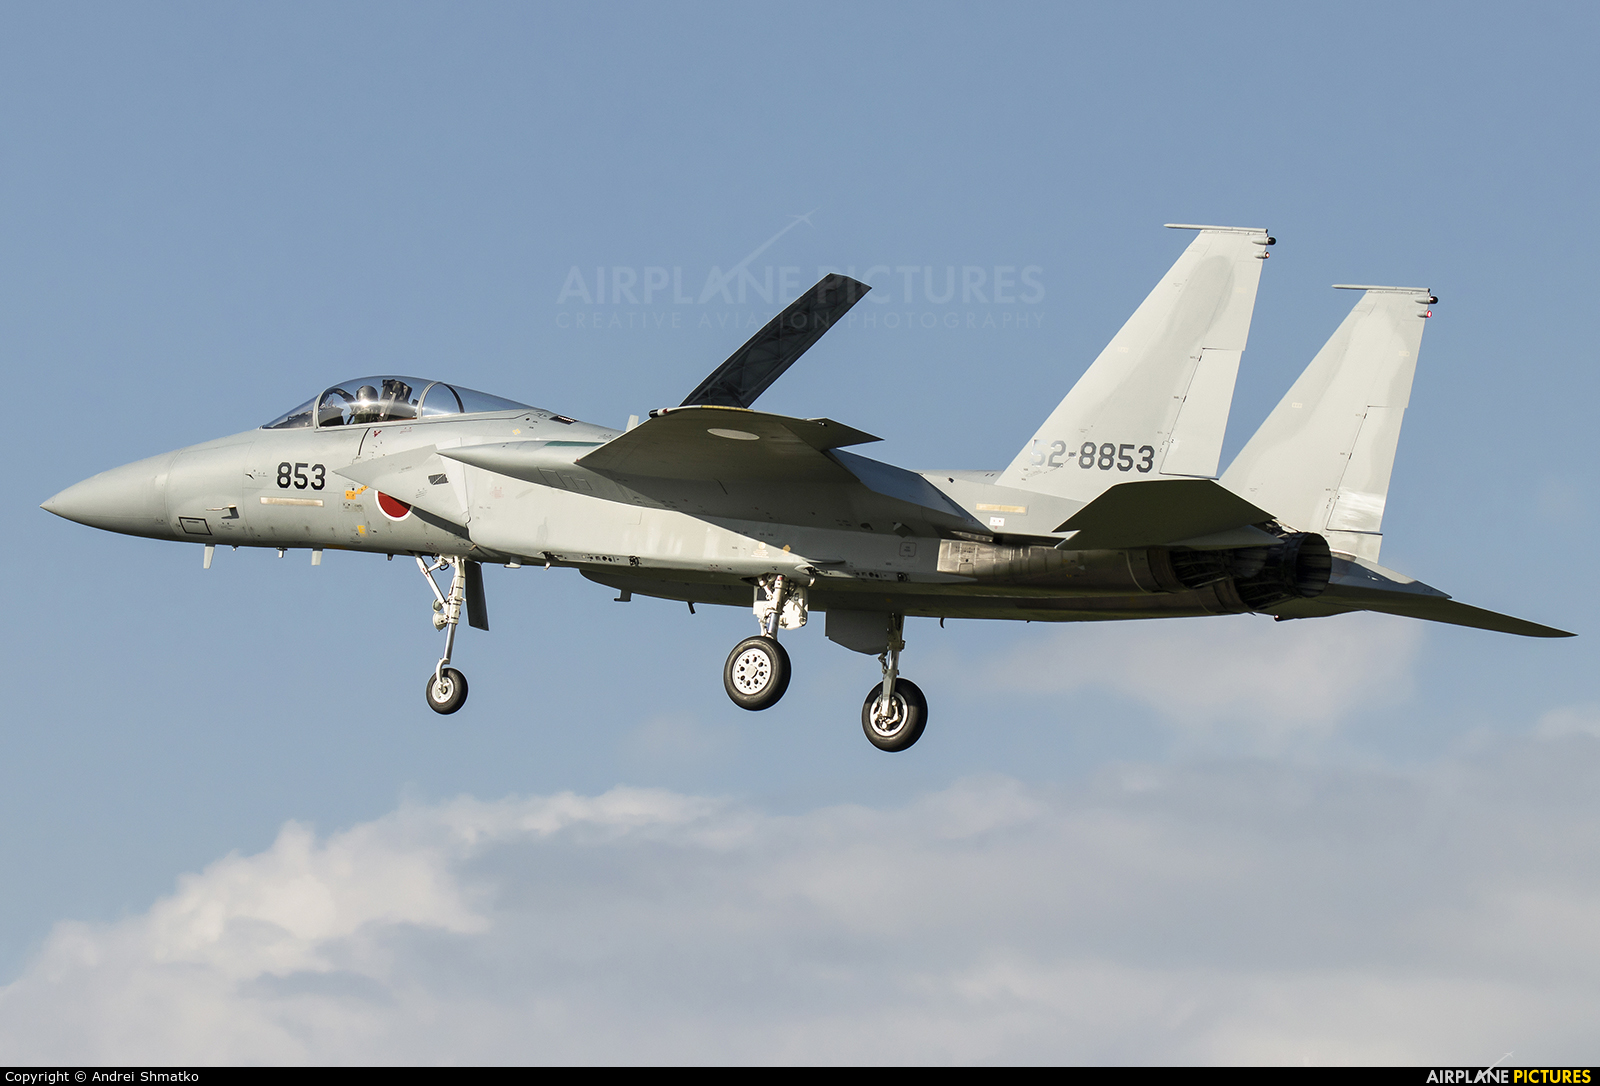 Japan - Air Self Defence Force 52-8853 aircraft at Nagoya - Komaki AB